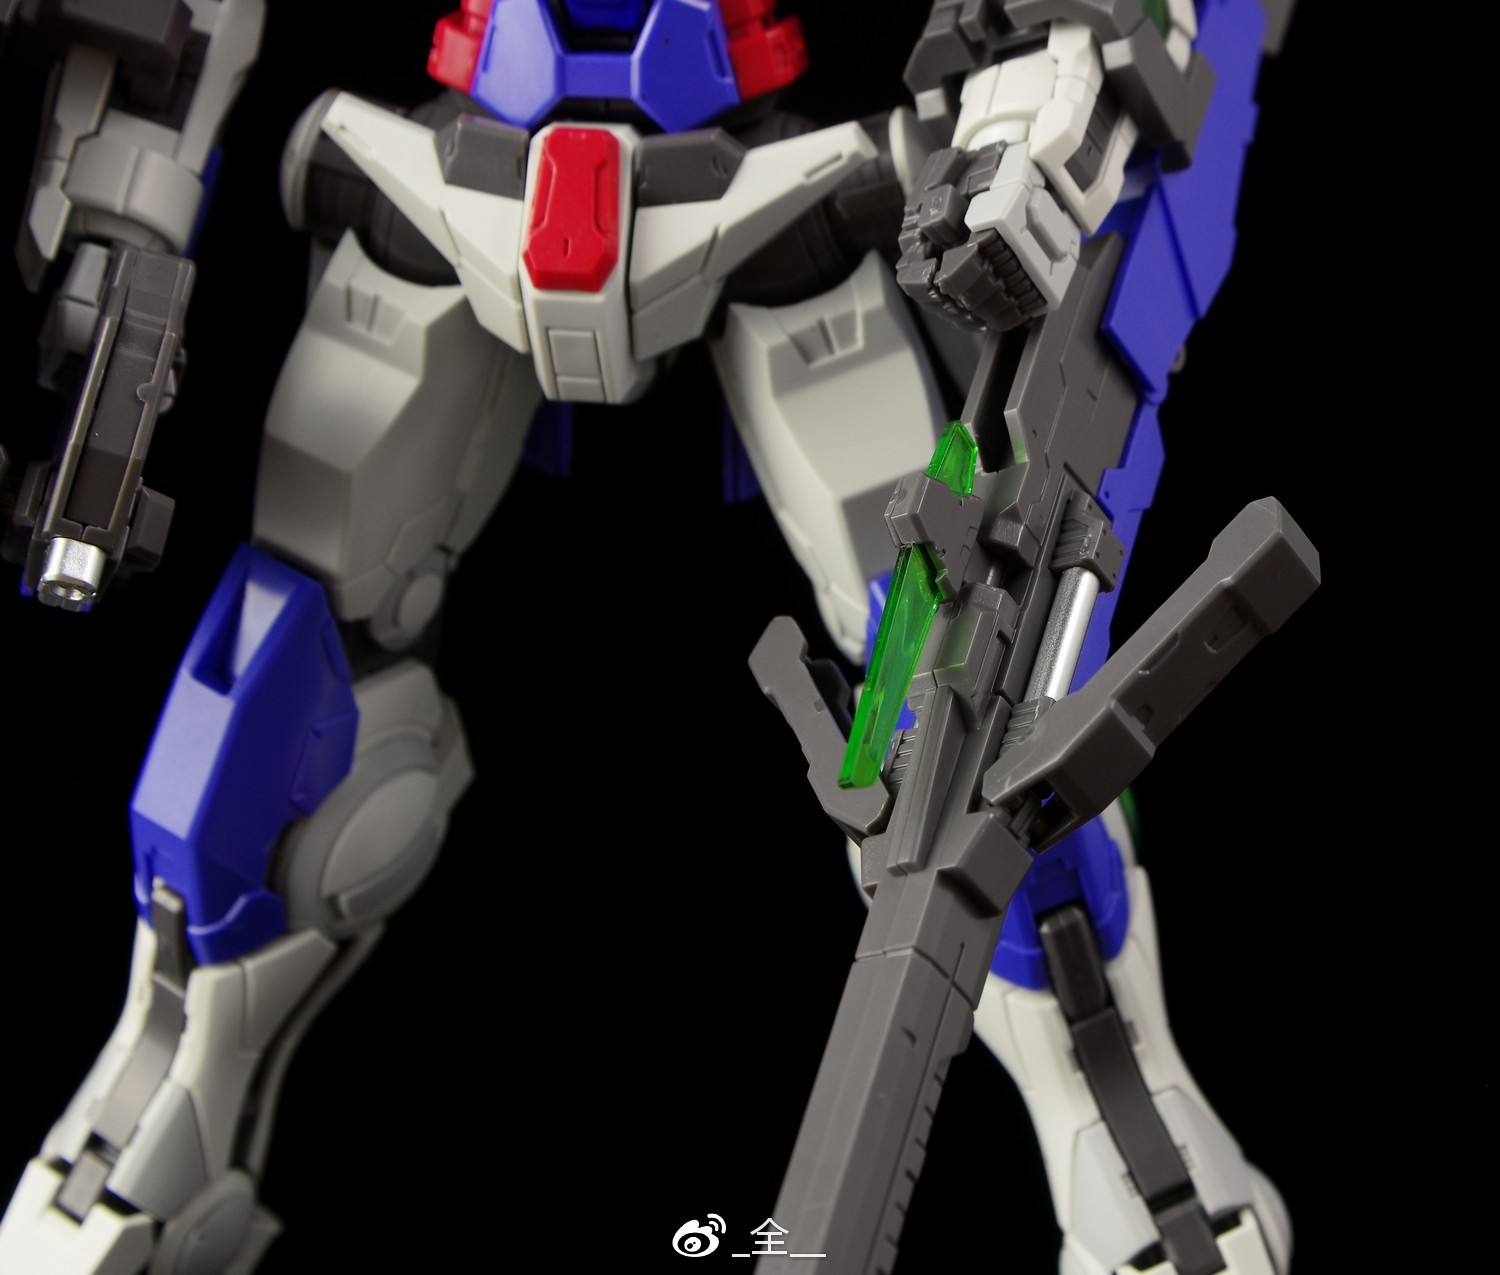 S269_mg_exia_led_hobby_star_inask_101.jpg